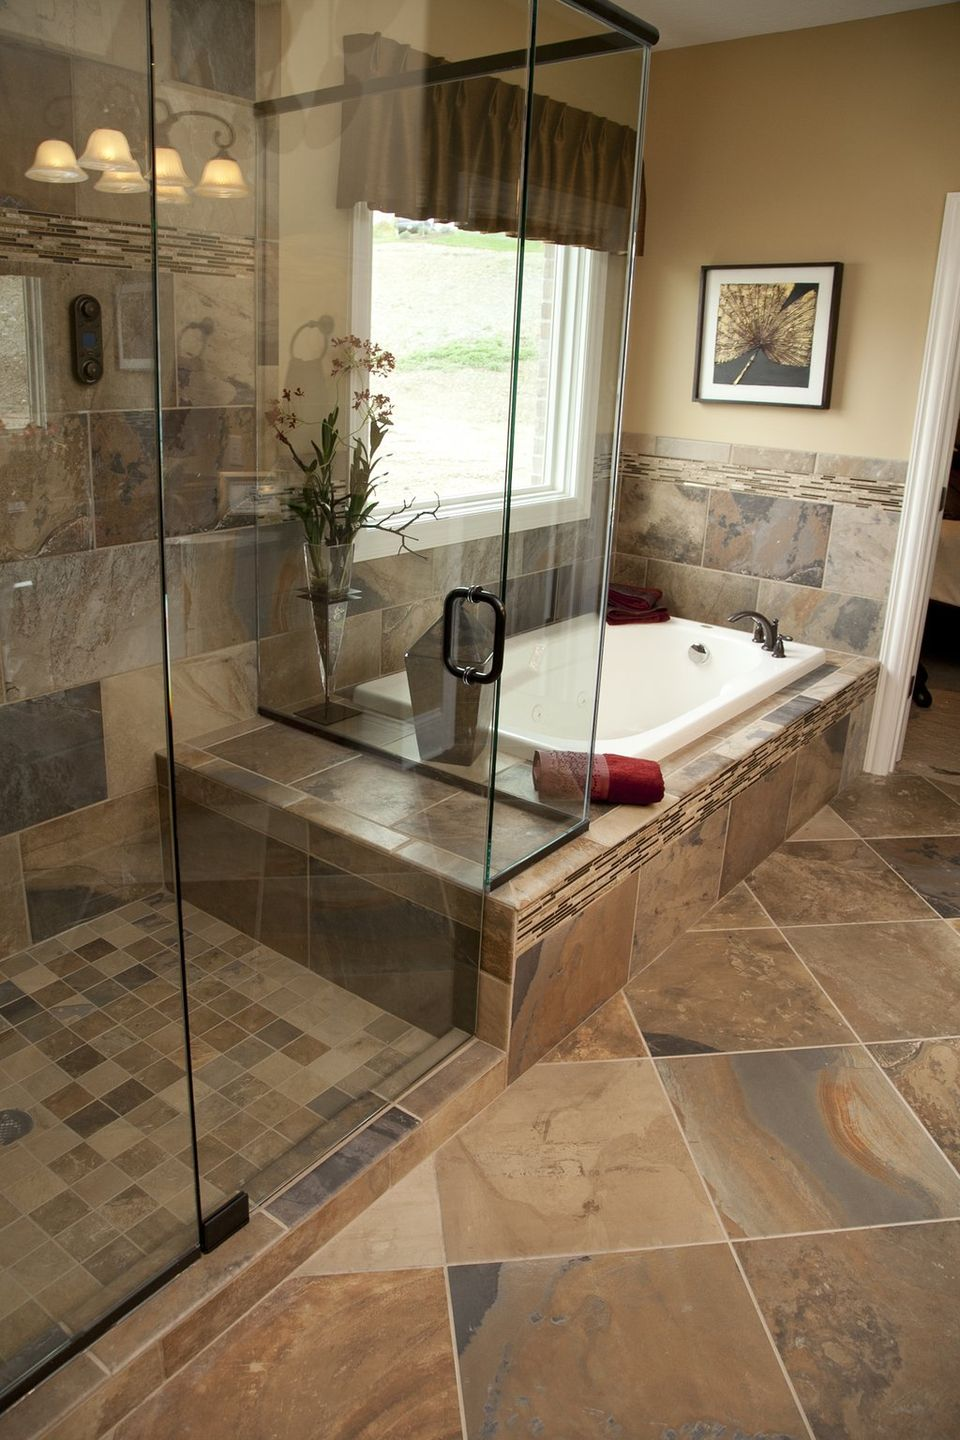 33 stunning pictures and ideas of natural stone bathroom Images of bathroom tile floors